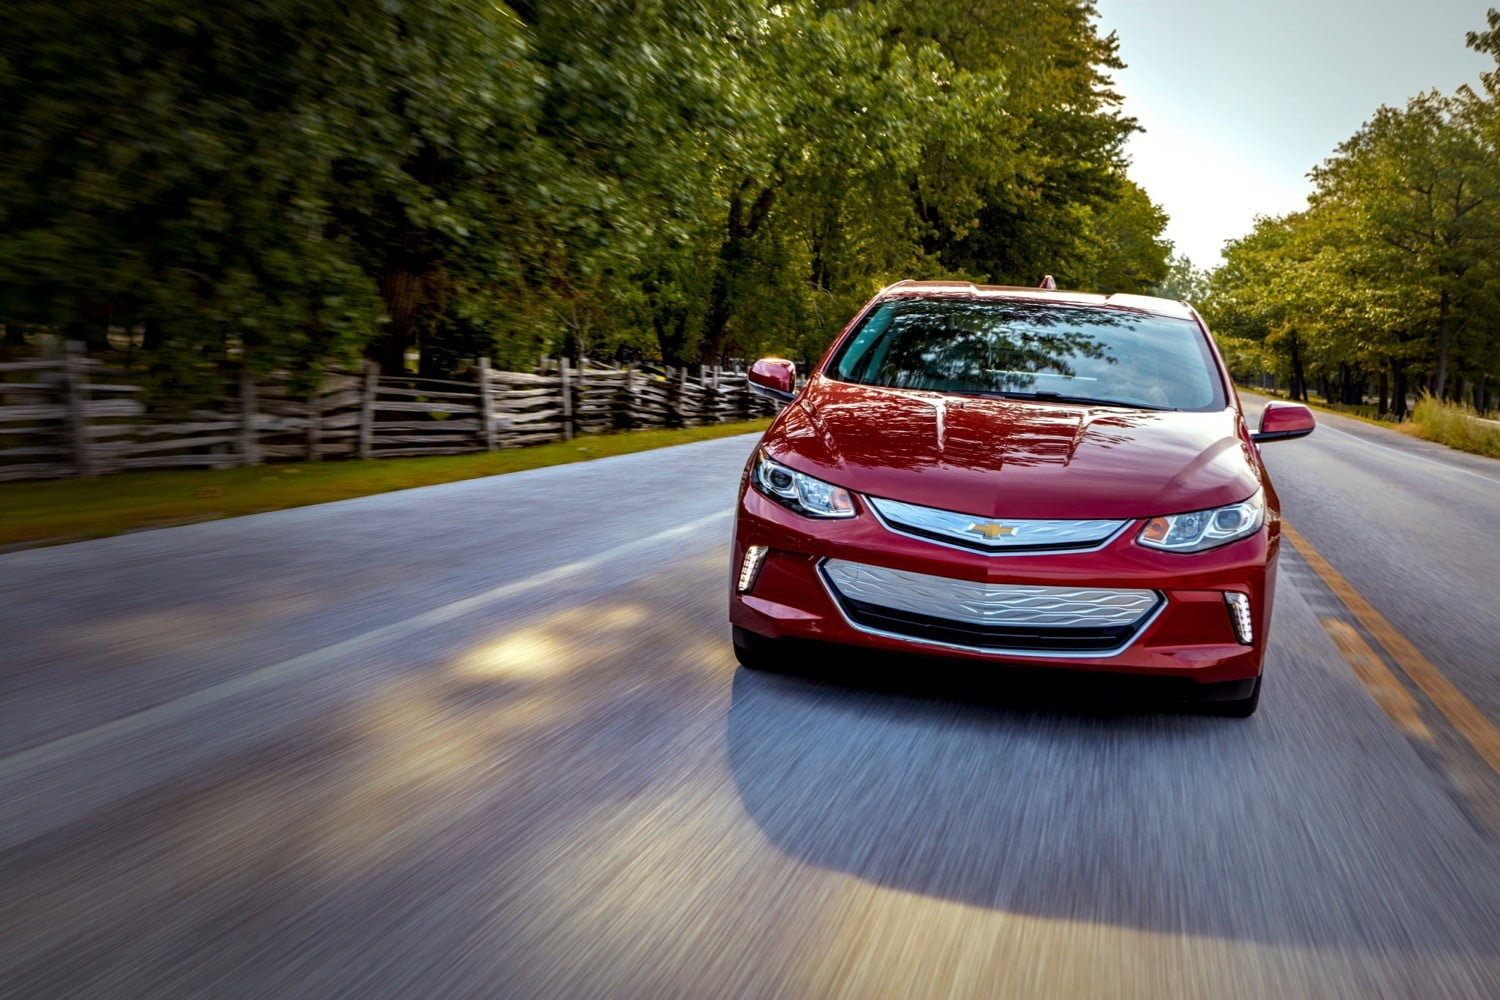 General Motors Cars >> Gm And Vw Ignore Hybrids To Focus On Electric Cars Digital